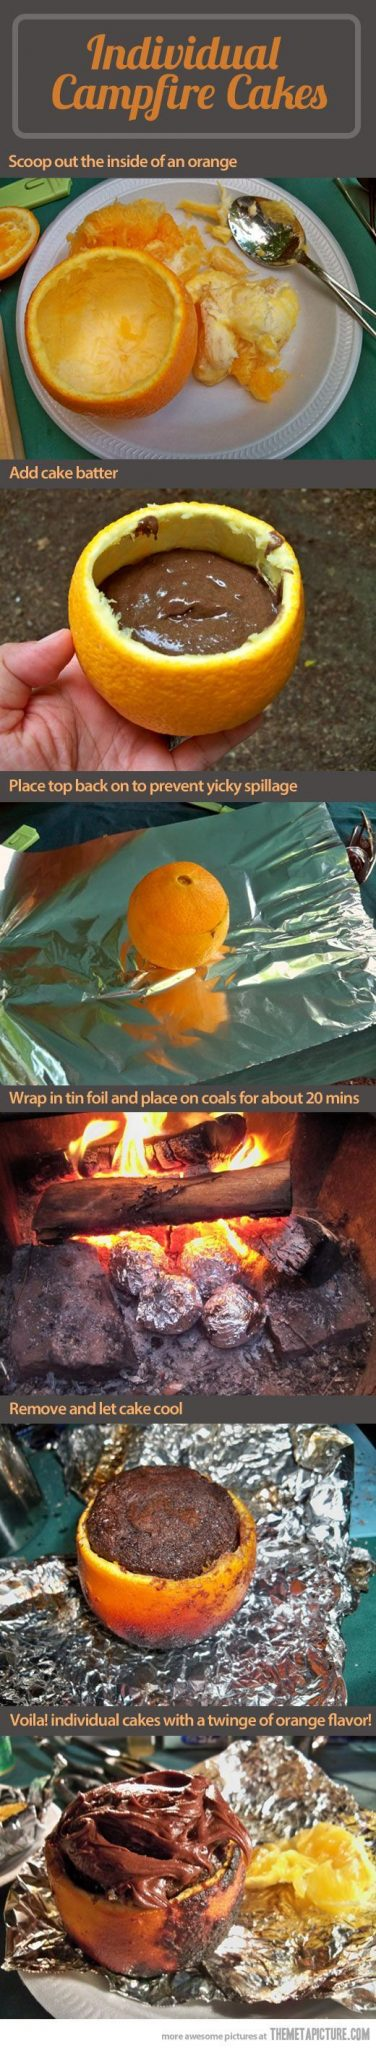 Campfire Cakes With Oranges